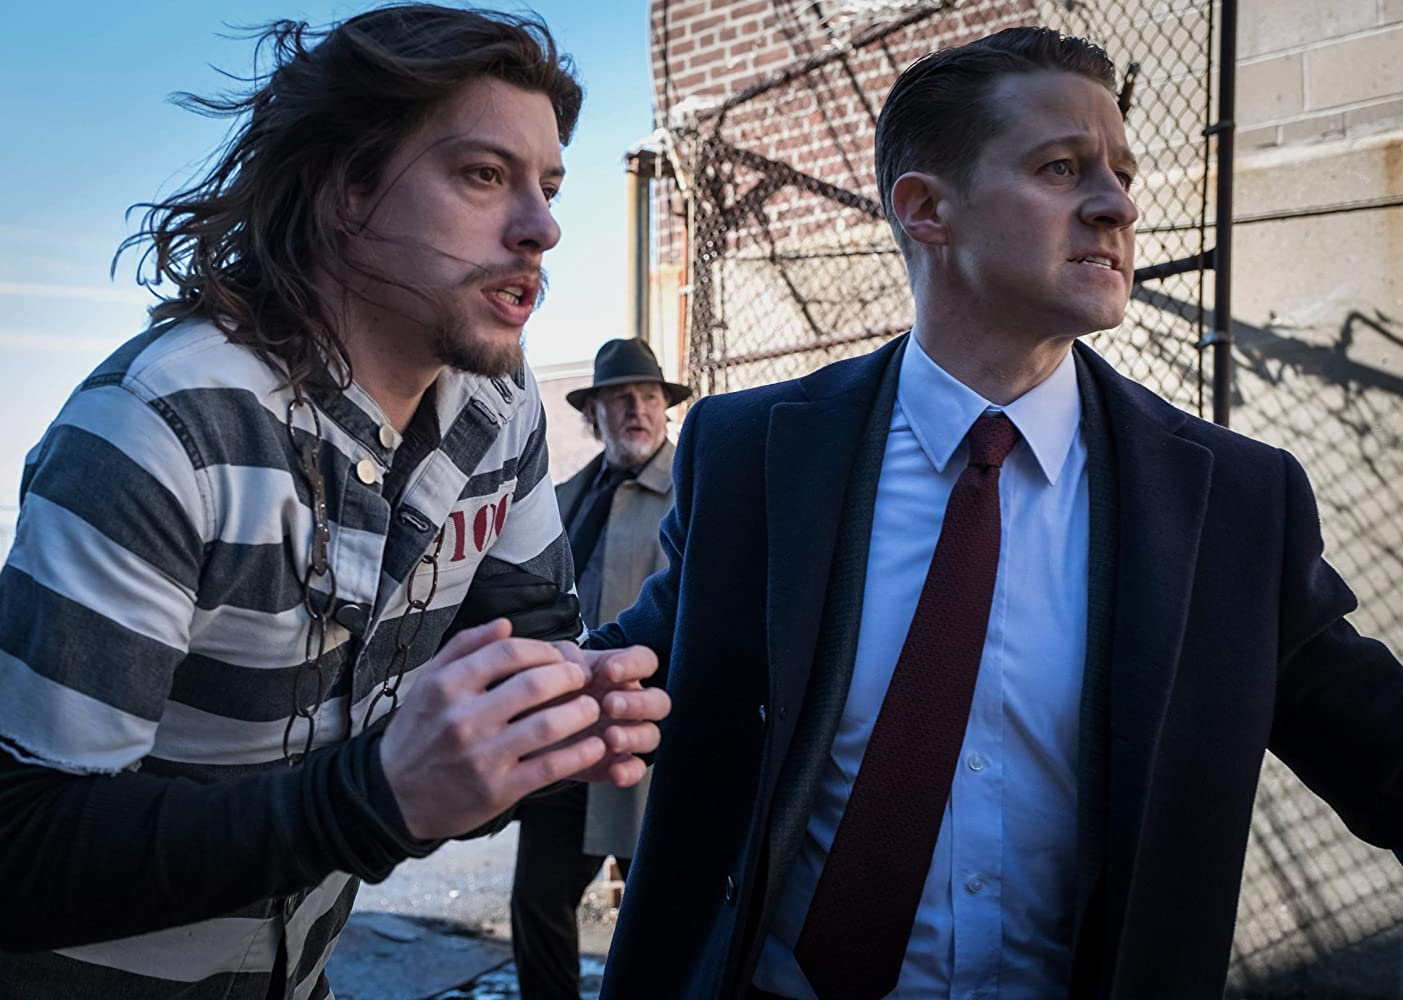 Gotham S03E11 – Mad City: Beware the Green-Eyed Monster